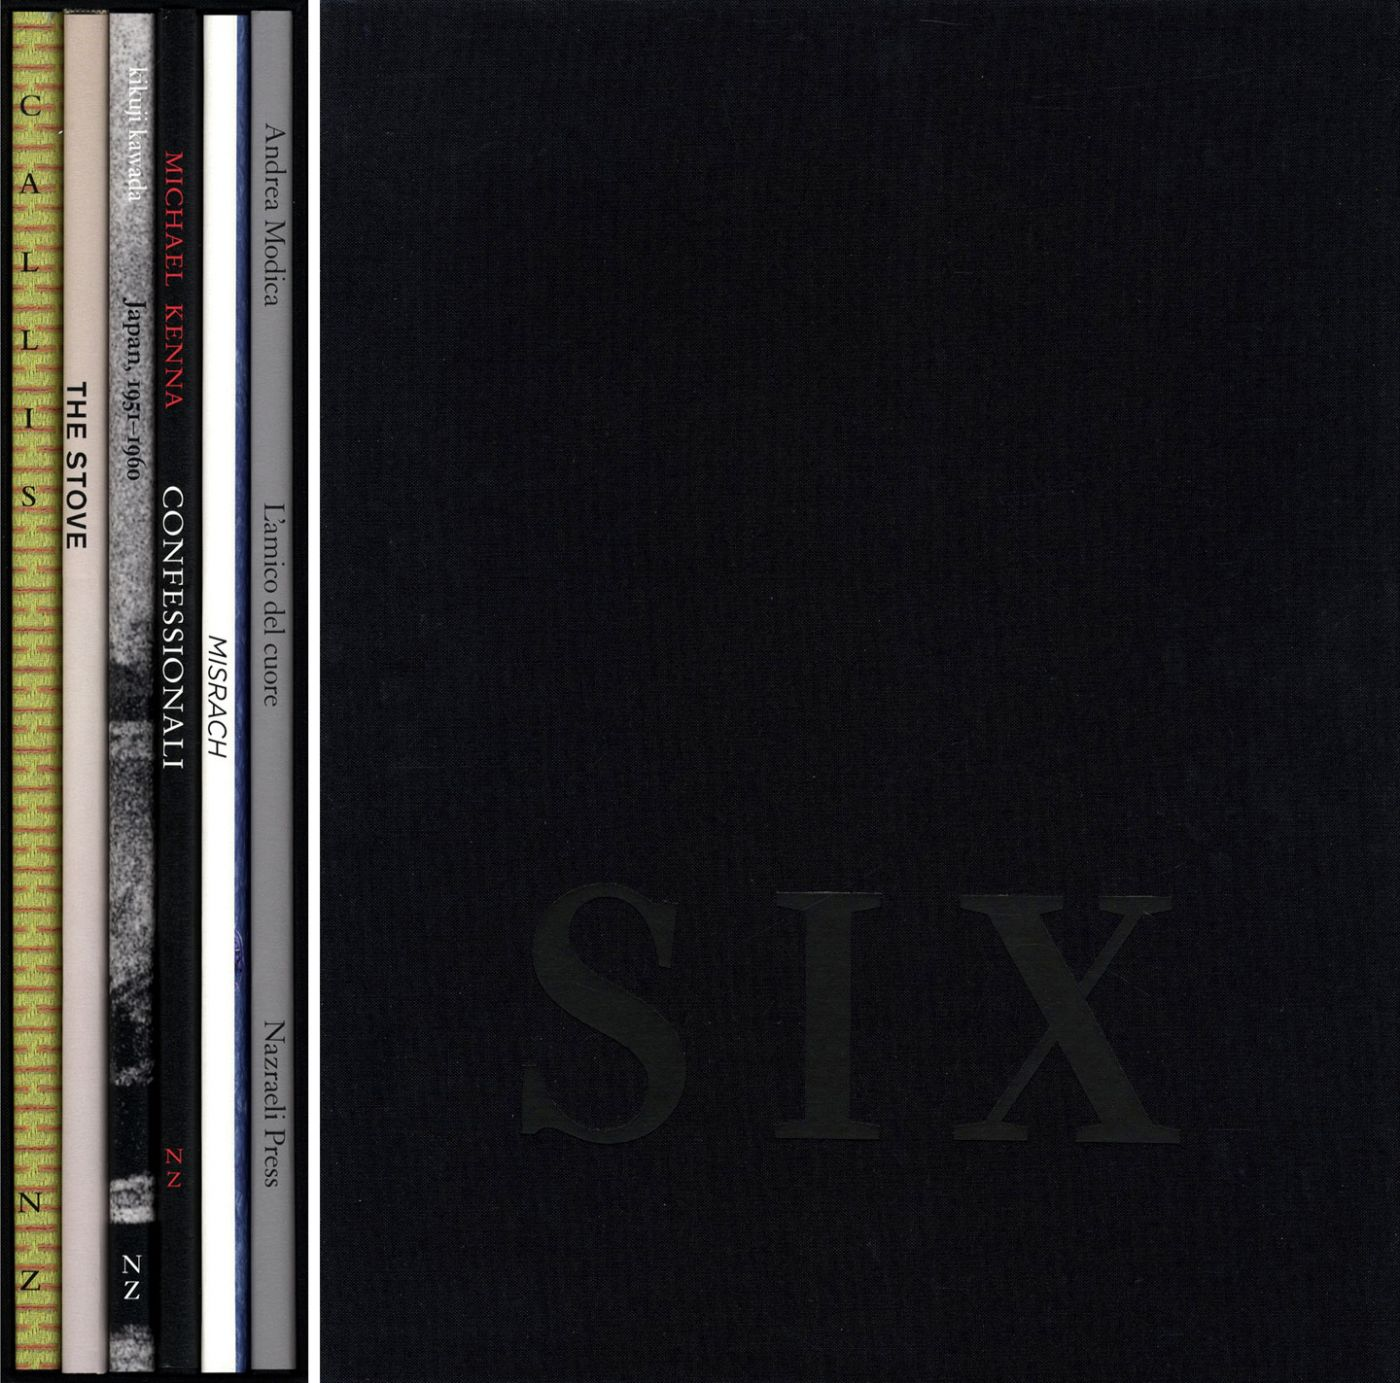 Nazraeli Press Six by Six (6 x 6) Subscription Series: Set 5 (of 6), Limited Edition (with 6 Prints): Jo Ann Callis: Performance; Thomas Demand: The Stove; Kikuji Kawada: Japan 1951-1960; Michael Kenna: Confessionali; Richard Misrach: Misrach (Swimmers); Andrea Modica: L'amico del cuore